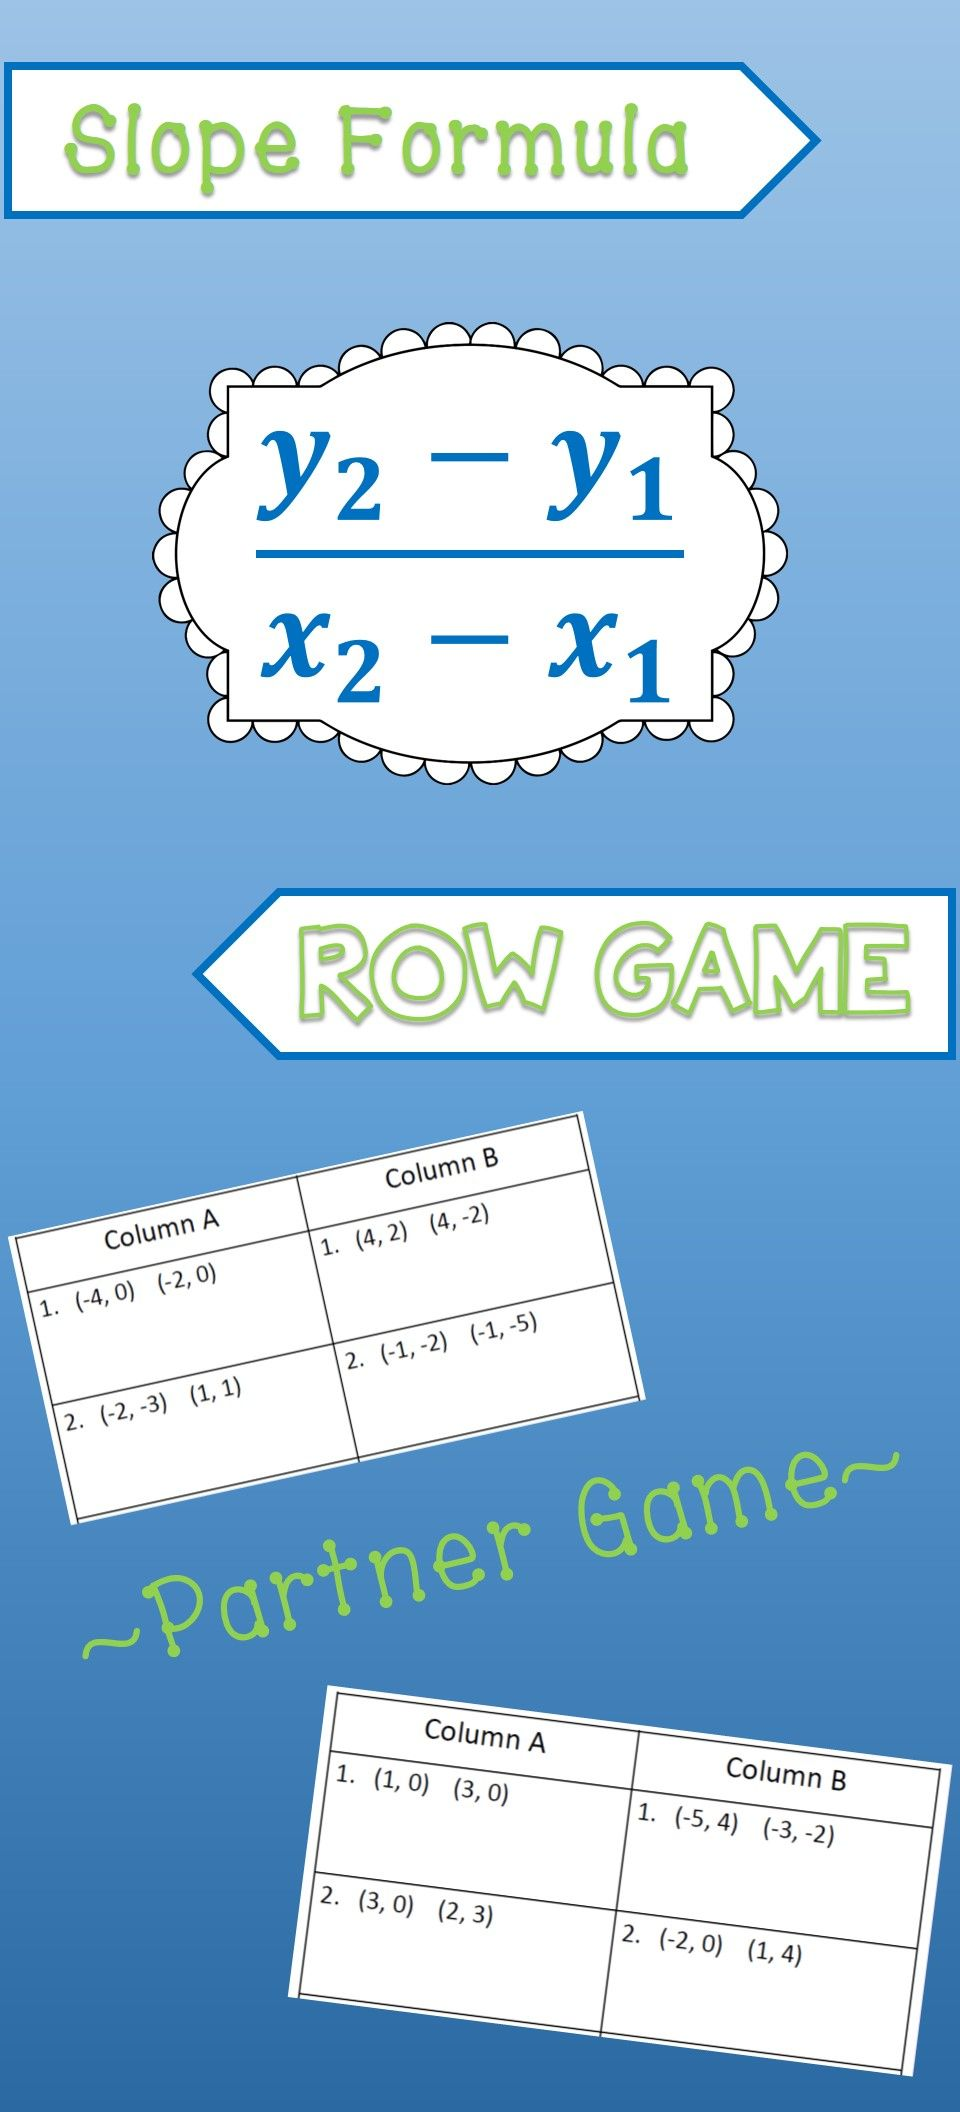 Slope Row Game | Activities, Students and Algebra